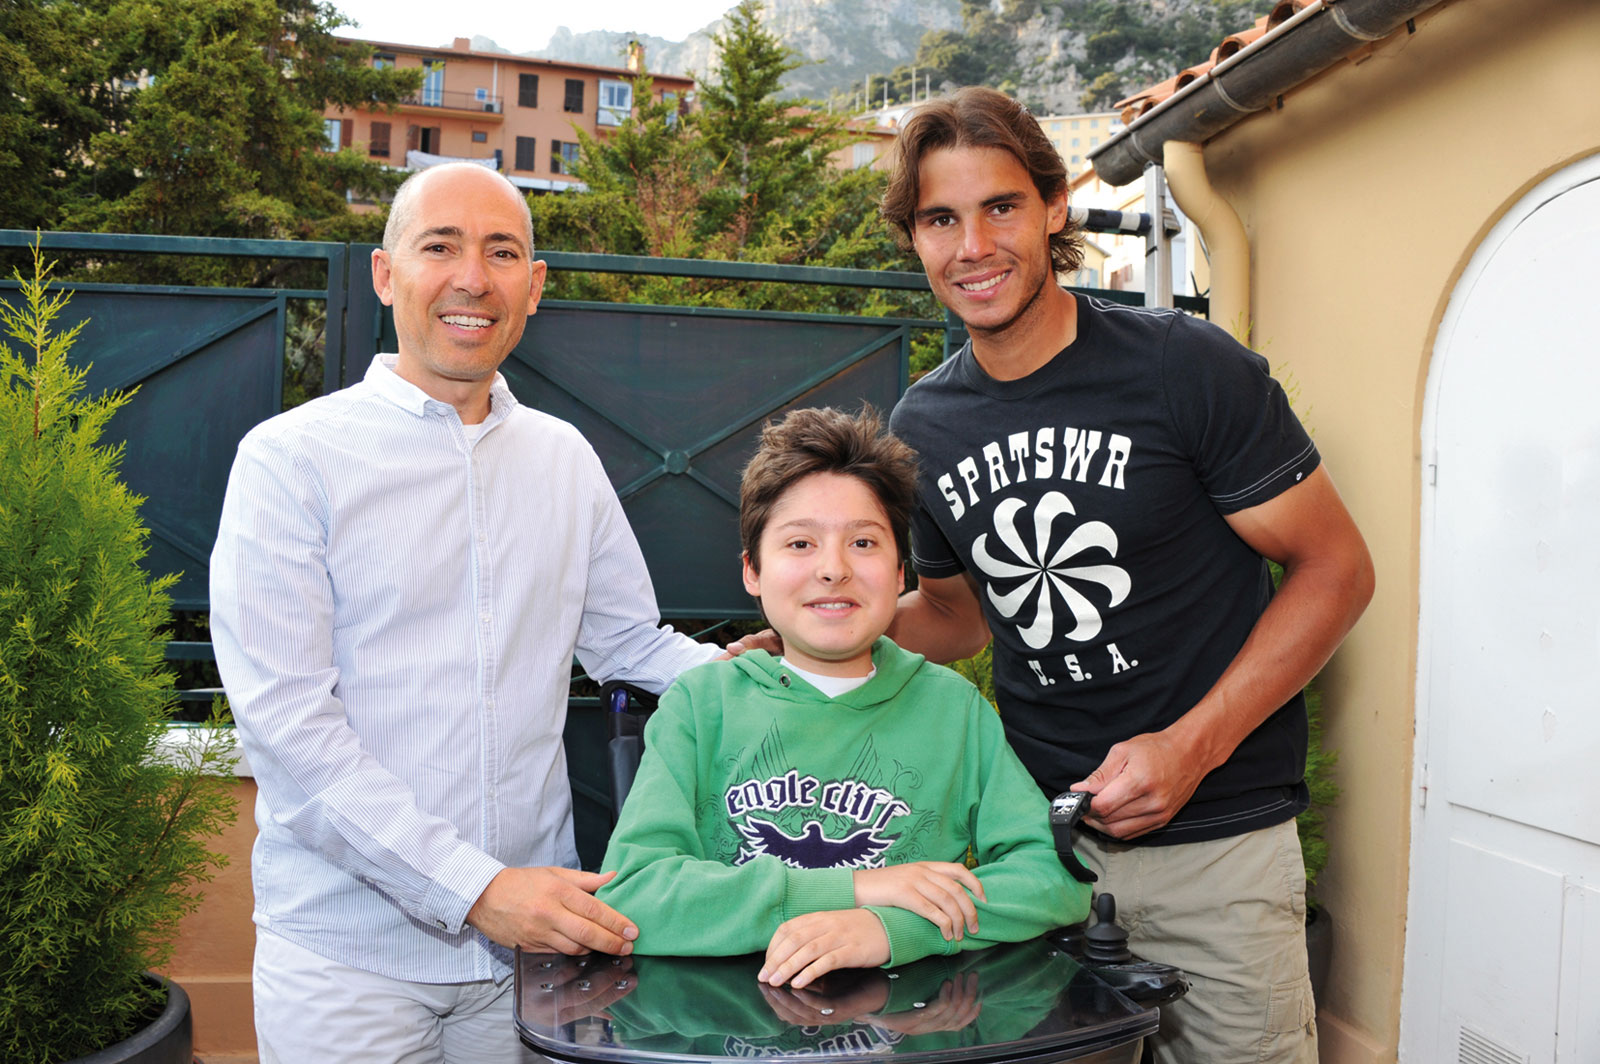 Duchenne Muscular Dystrophy Quotes In April At The End Of The Monte Carlo Championships In